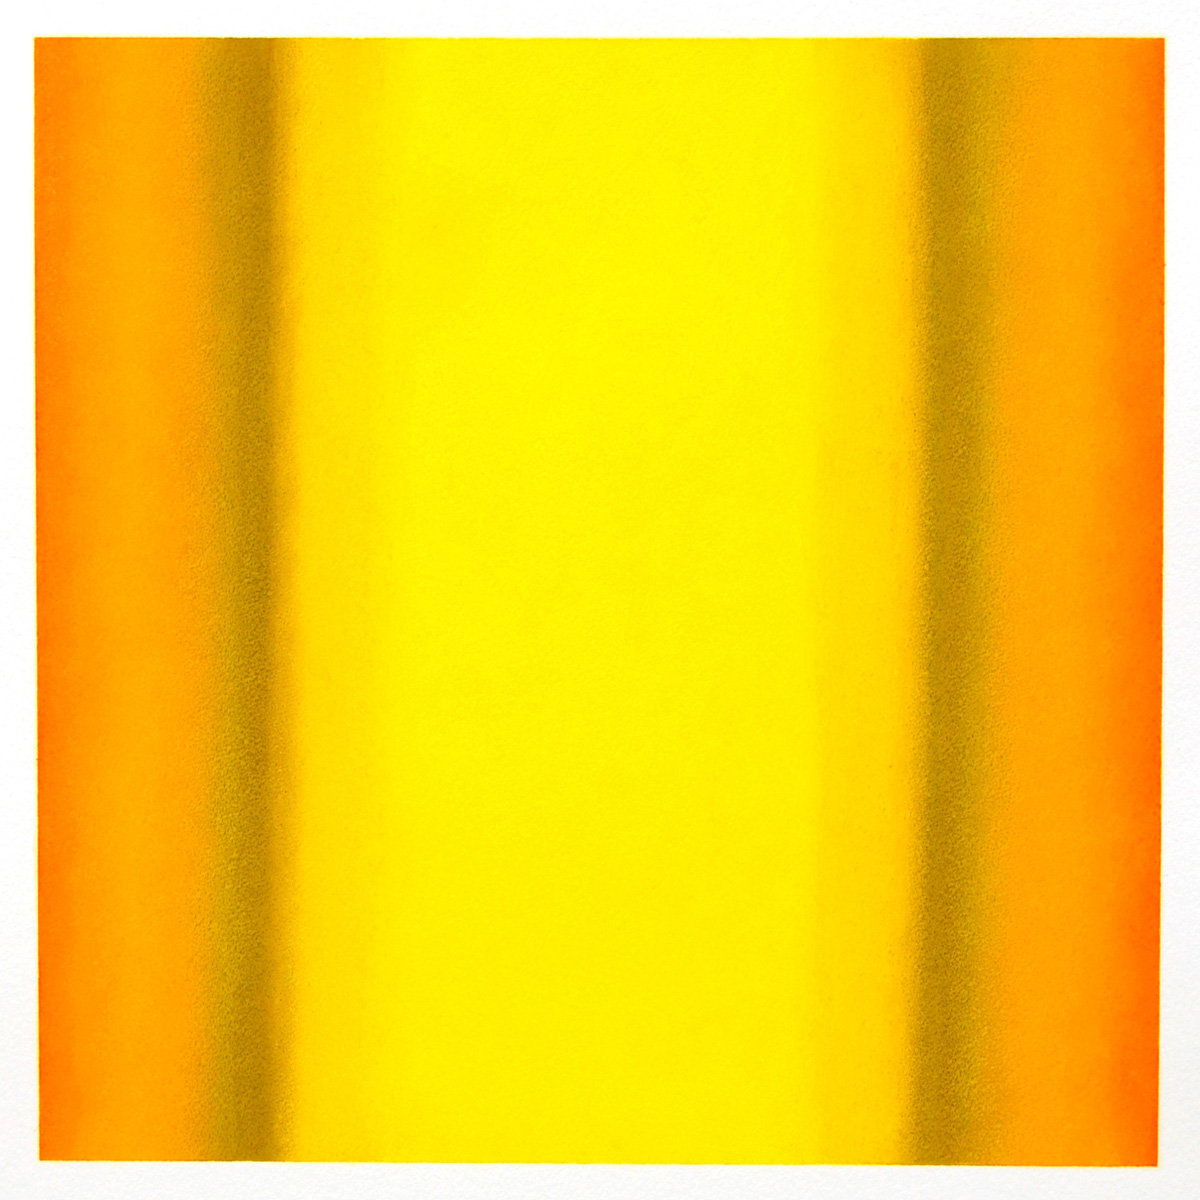 Warm-Light Yellow-Orange-Ochre, Interplay Series, 2012, pastel on paper, image: 14 x 14 in. (36 x 36 cm.), sheet: 30 x 22 in. (76 x 56 cm.)